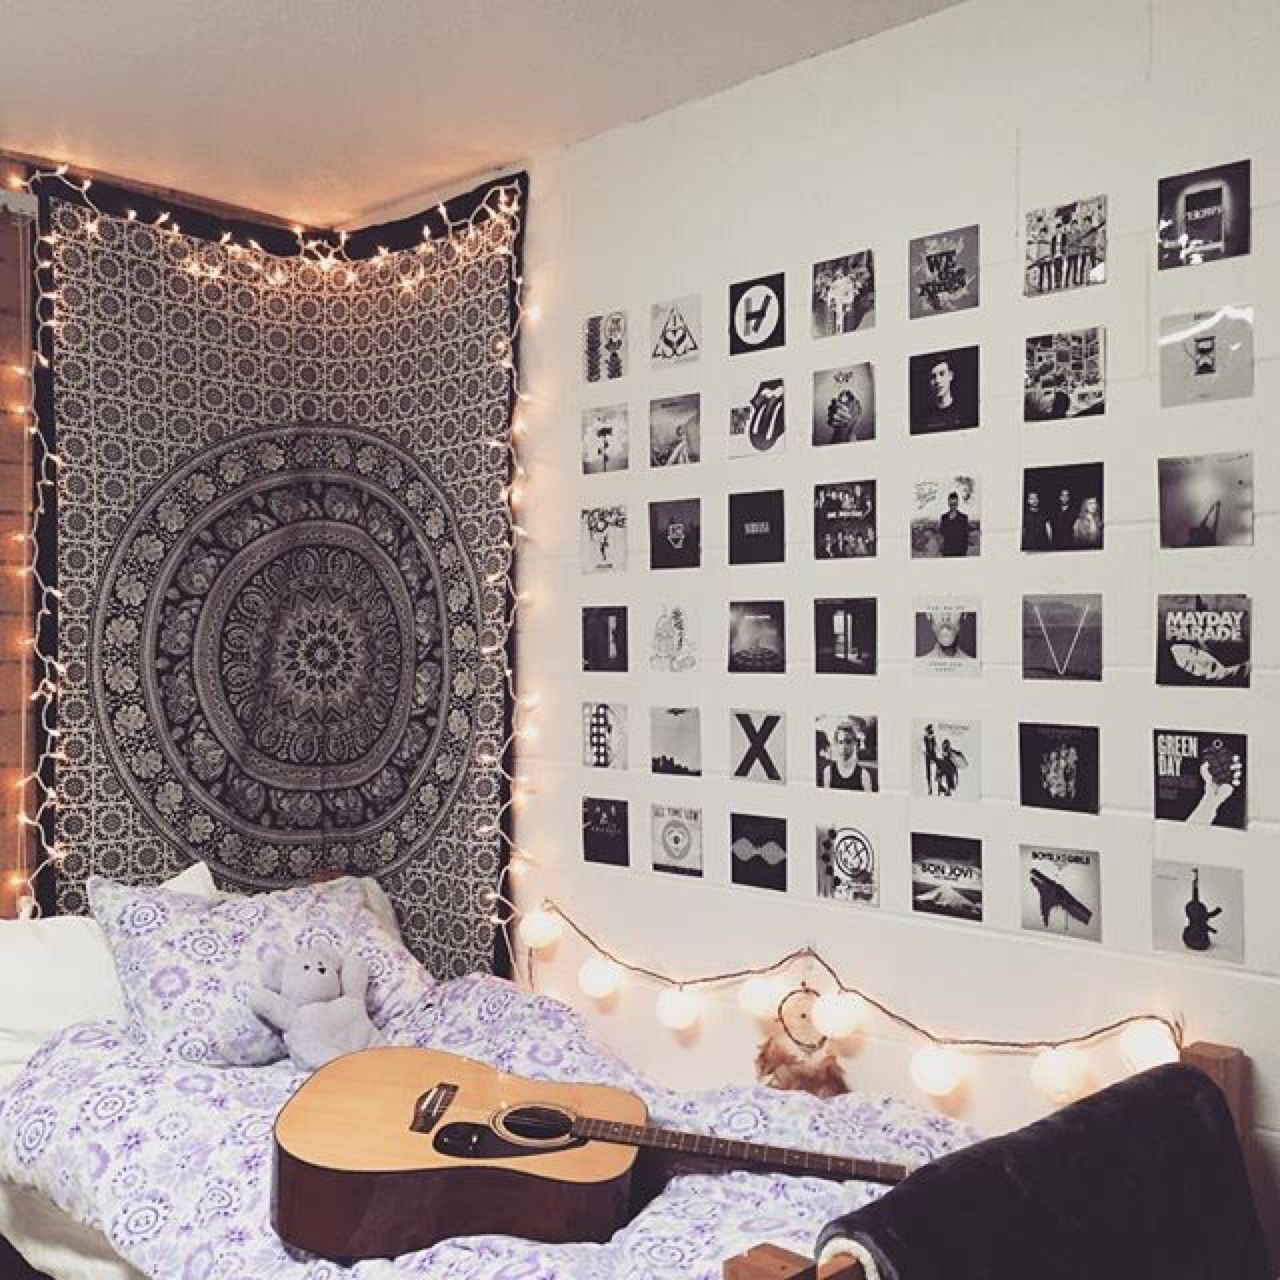 Bedroom fairy lights tumblr - Source Myroomspo Tapestry Bedroom Tumblr Bedroom Decoration Room Decor Diy Room Inspiration Poster Lights Fairy Lights